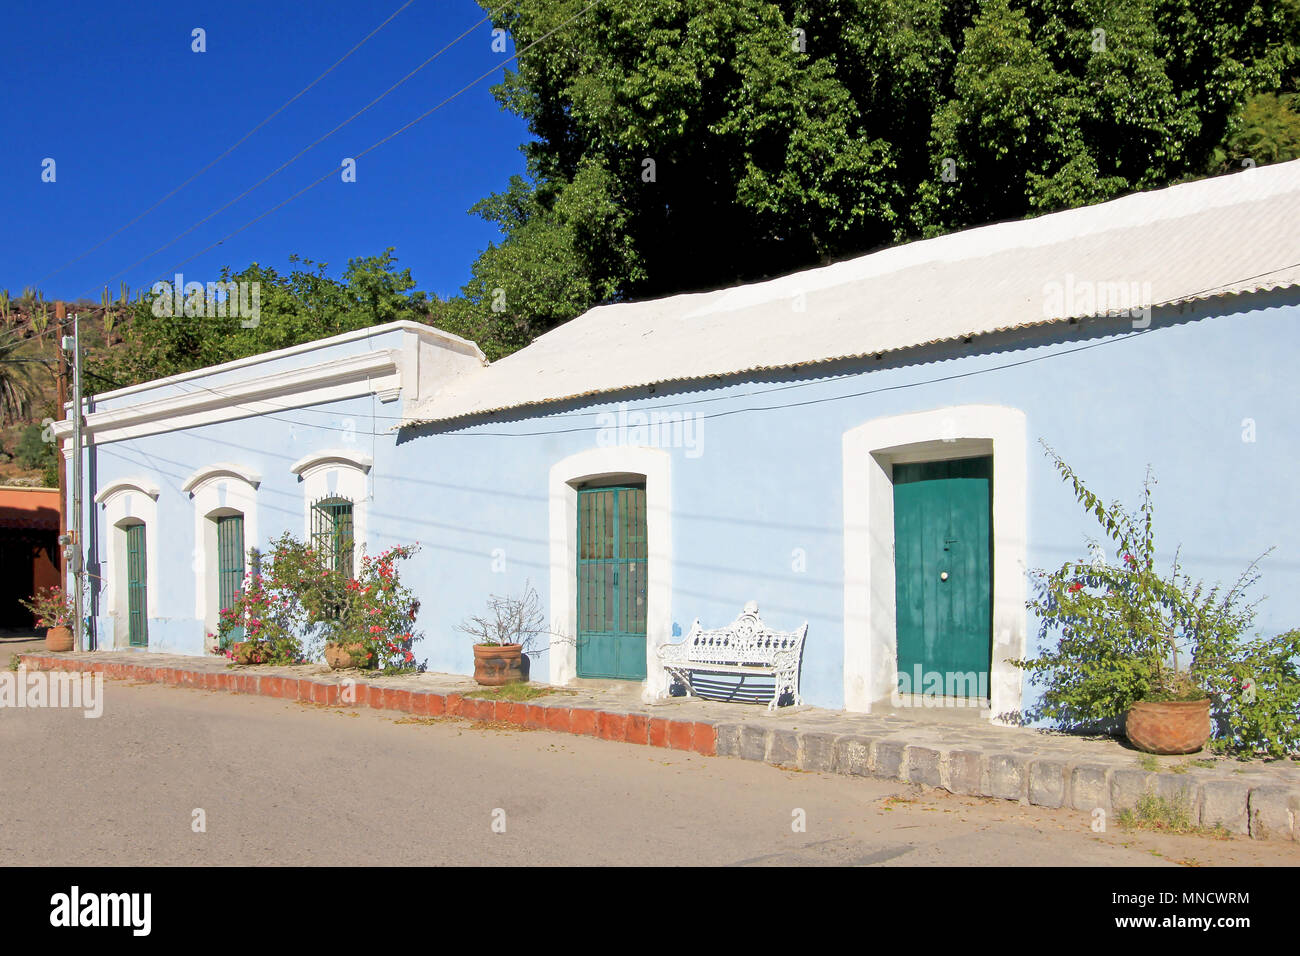 Colorful traditional houses in the streets of the Mission San Ignacio, Baja California, Mexico - Stock Image